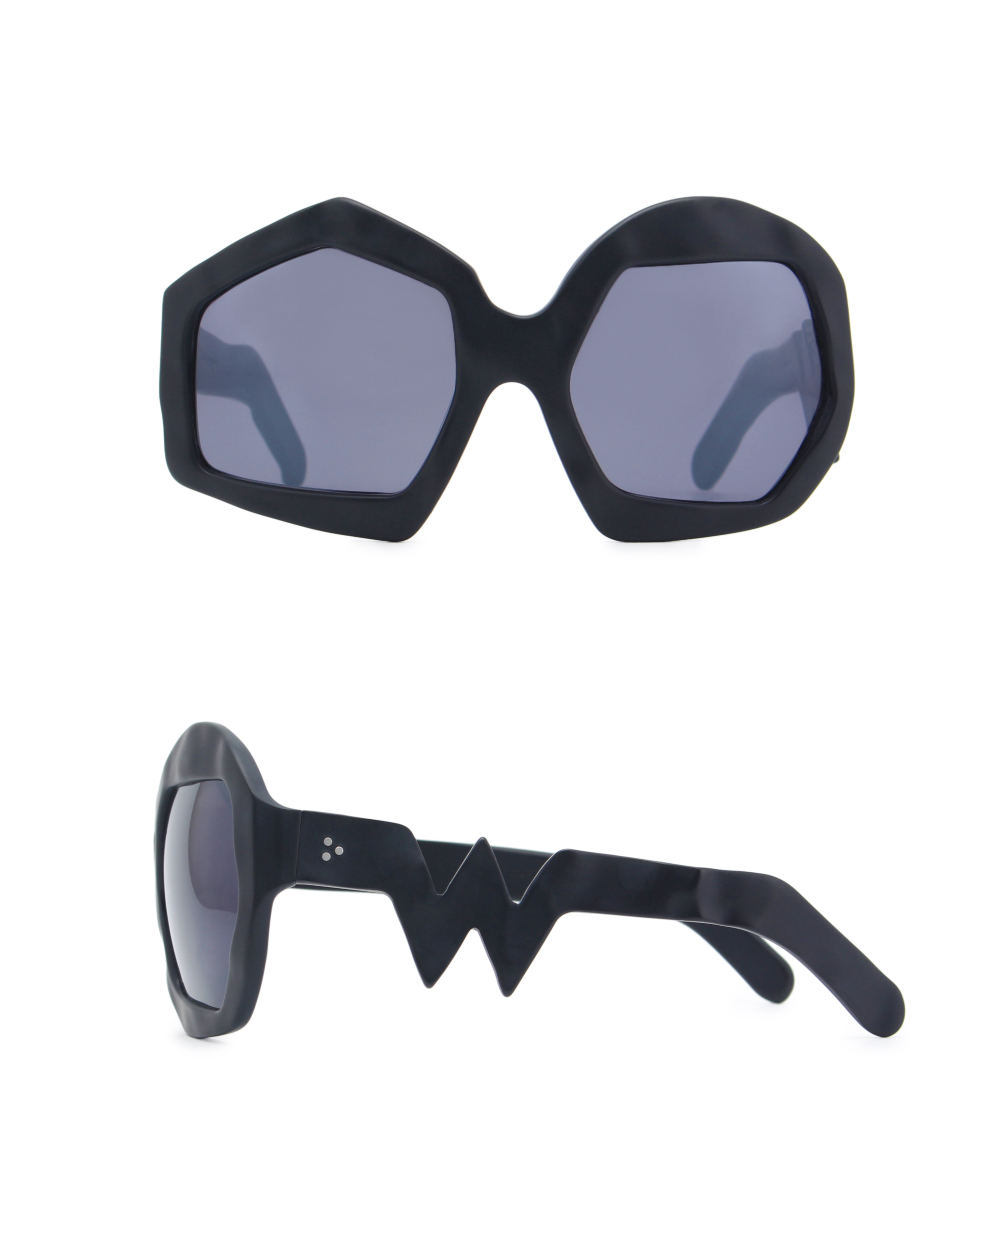 Thunder Sunglasses. Black